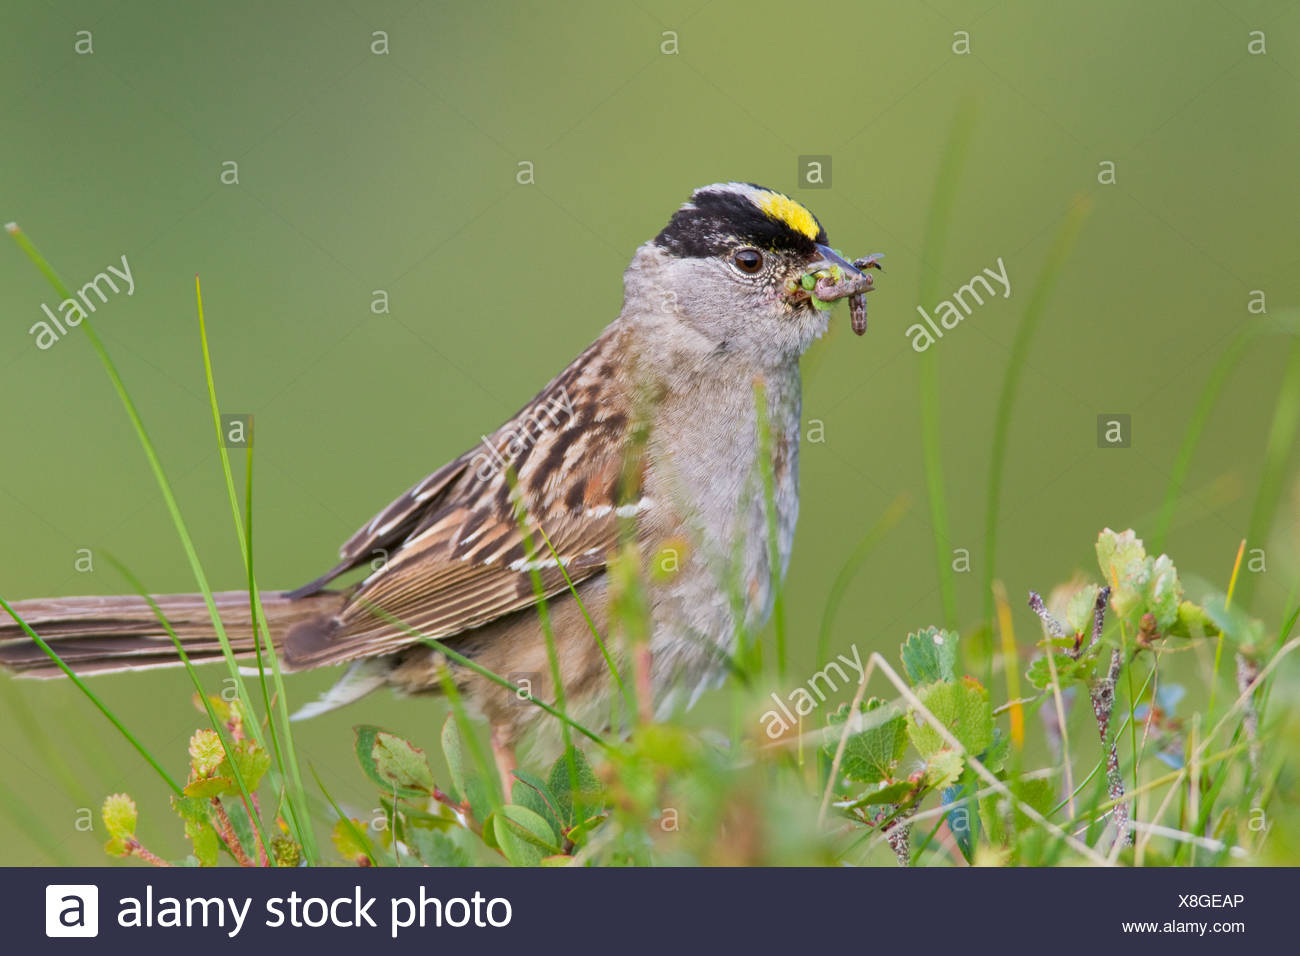 Close up of a Golden-crowned Sparrow with its bill full of worms to feed young, Arctic Valley, Chugach State Park, Alaska - Stock Image